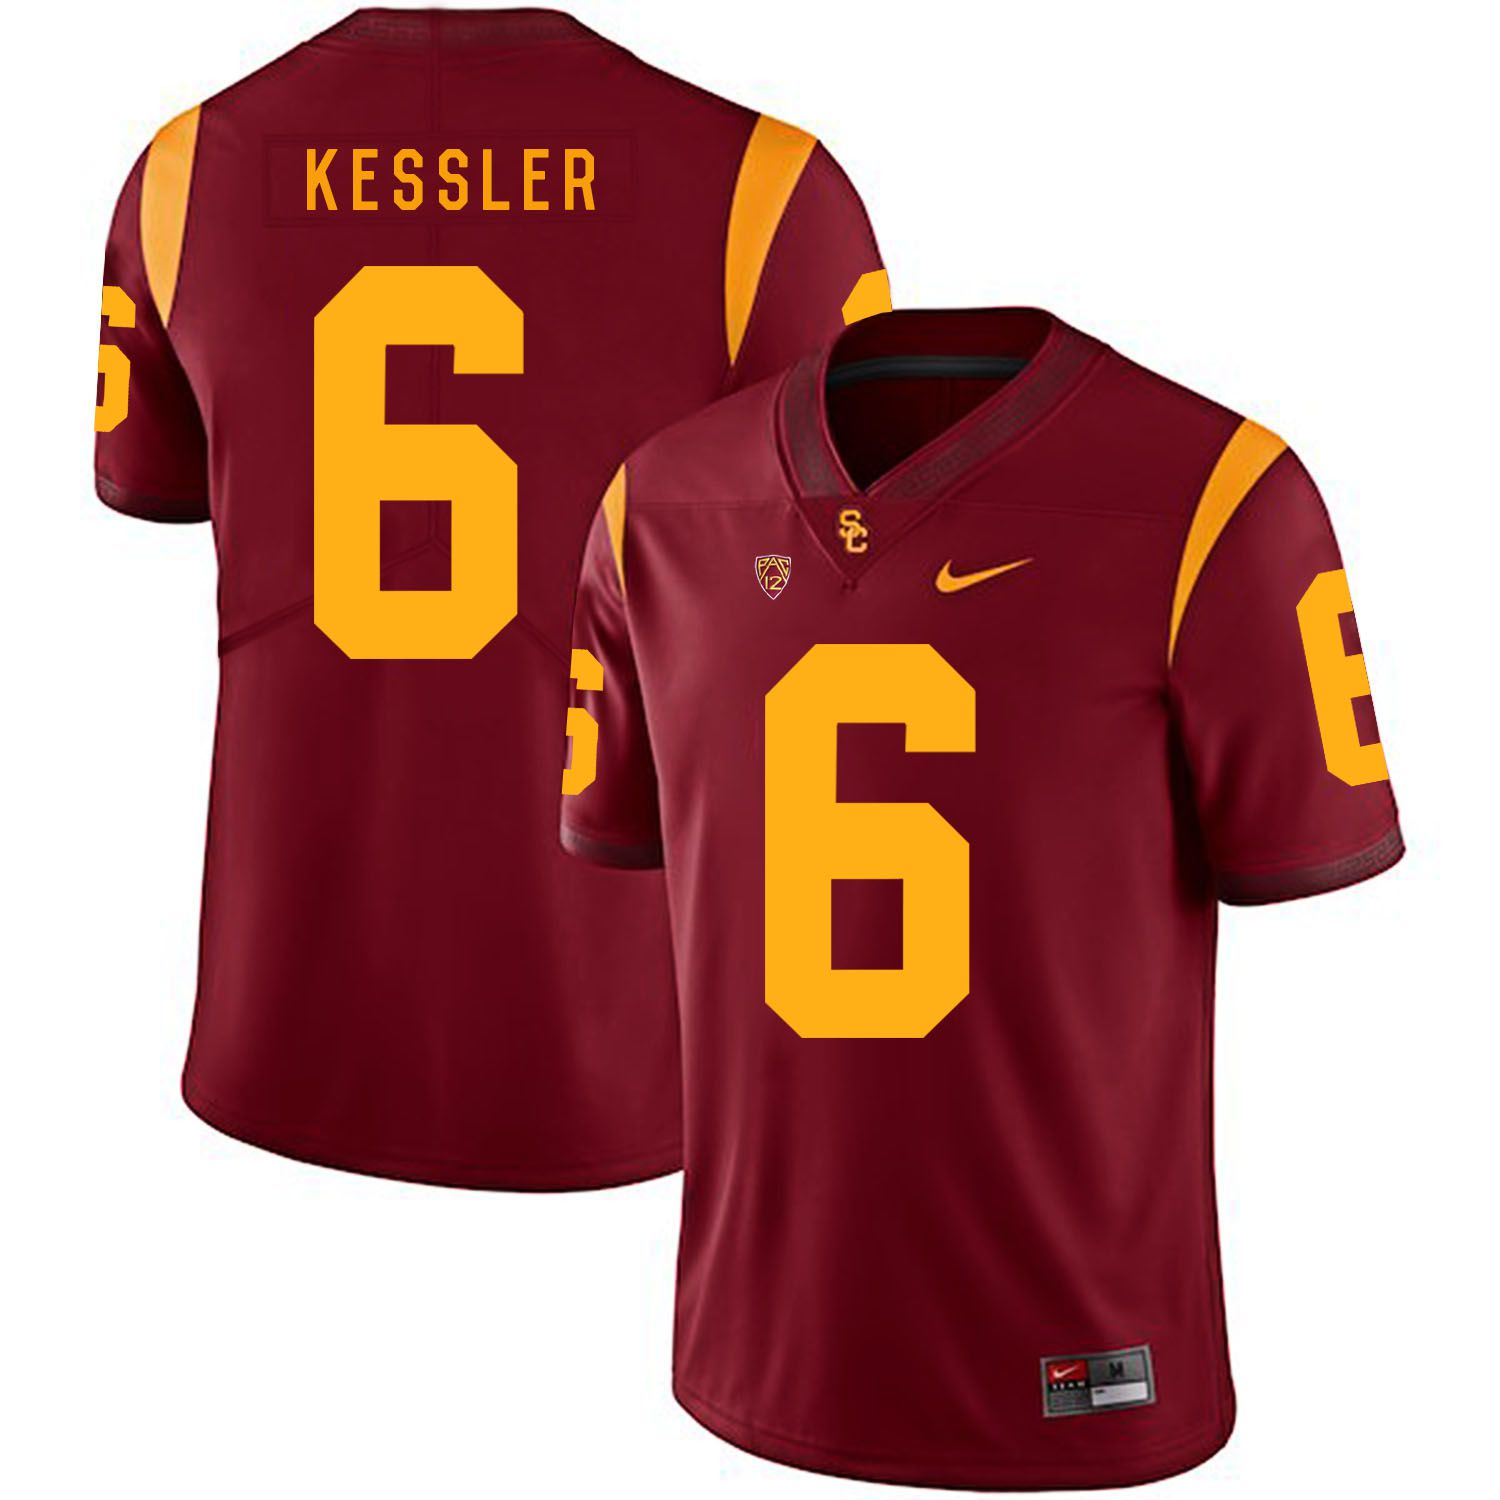 Men USC Trojans 6 Kessler Red Customized NCAA Jerseys